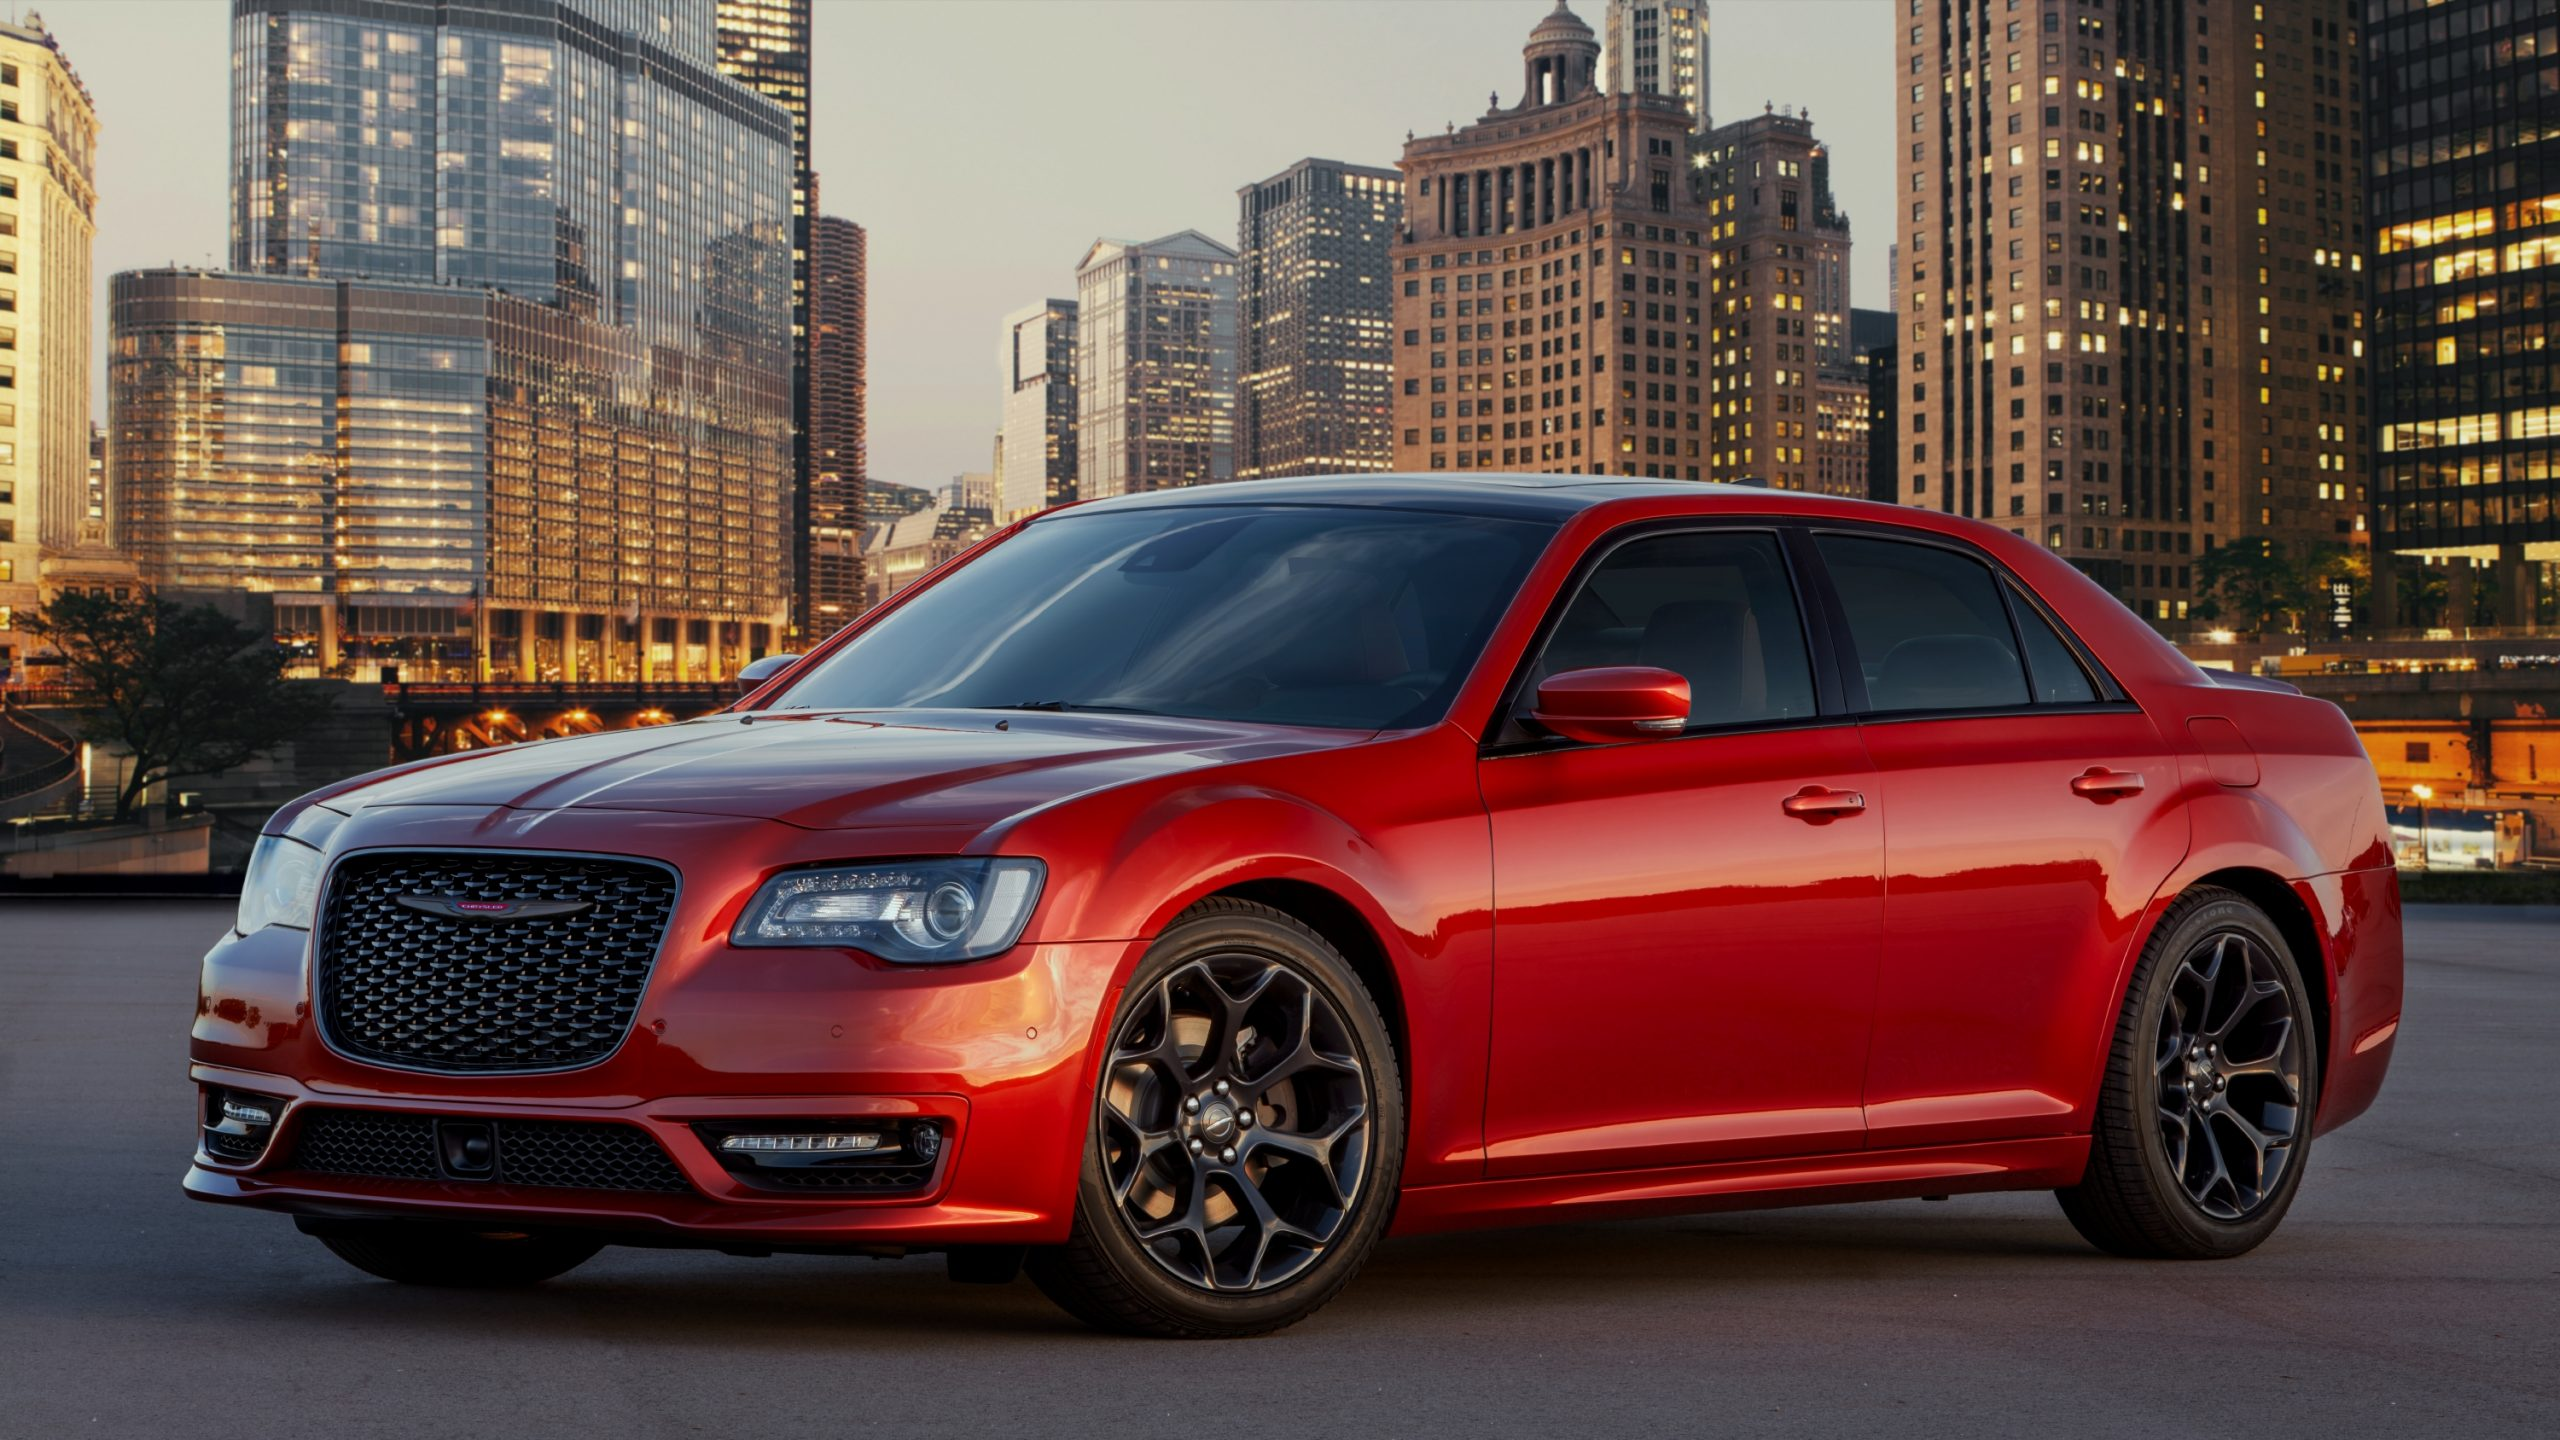 2021 Chrysler 300 in Canyon Sunset front three-quarter